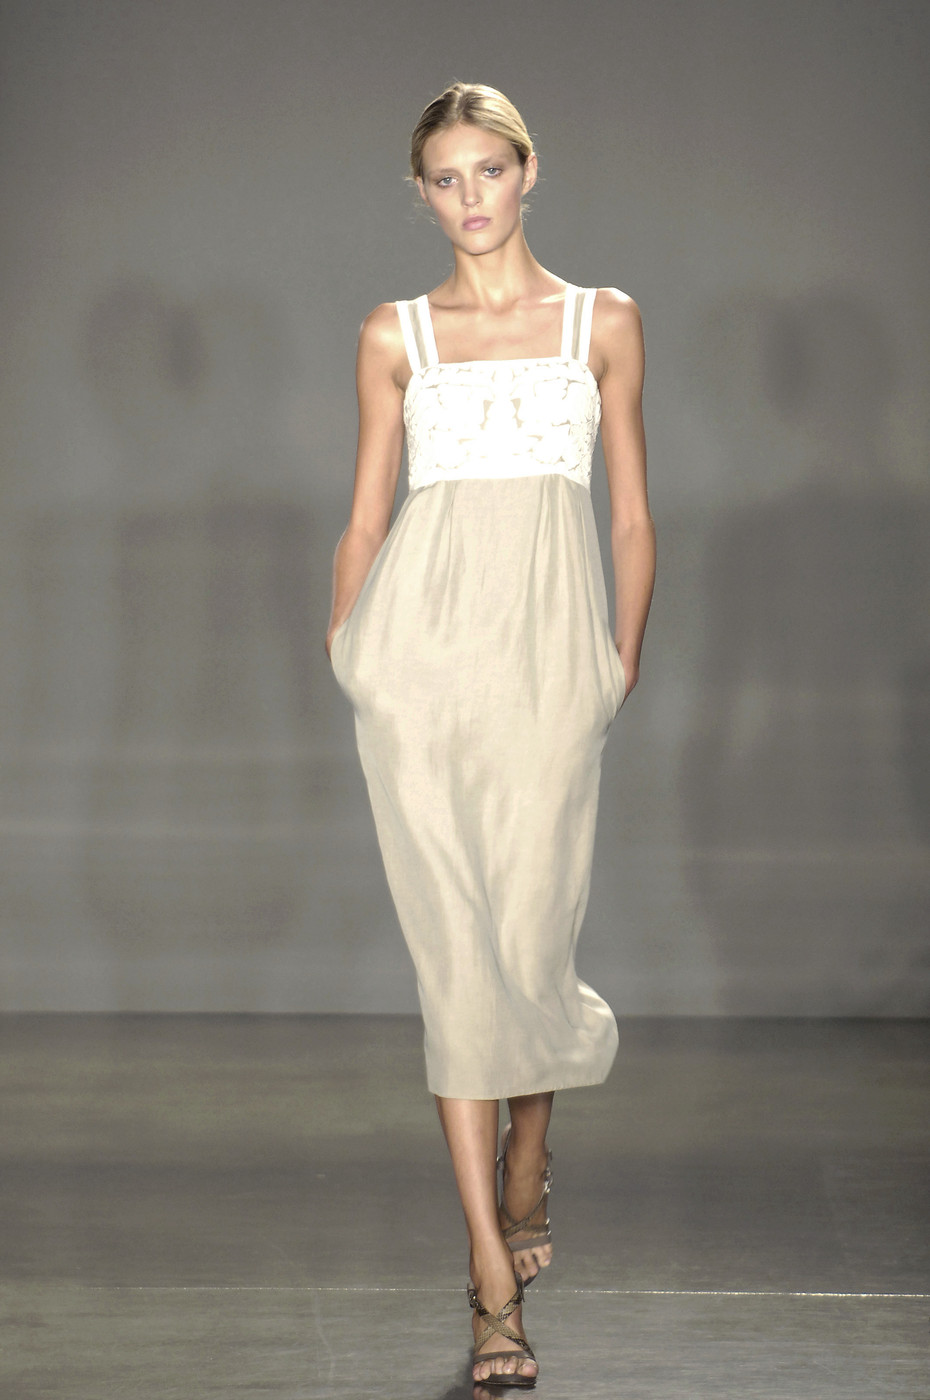 Proenza Schouler Spring/Summer 2006 via www.fashionedbylove.co.uk